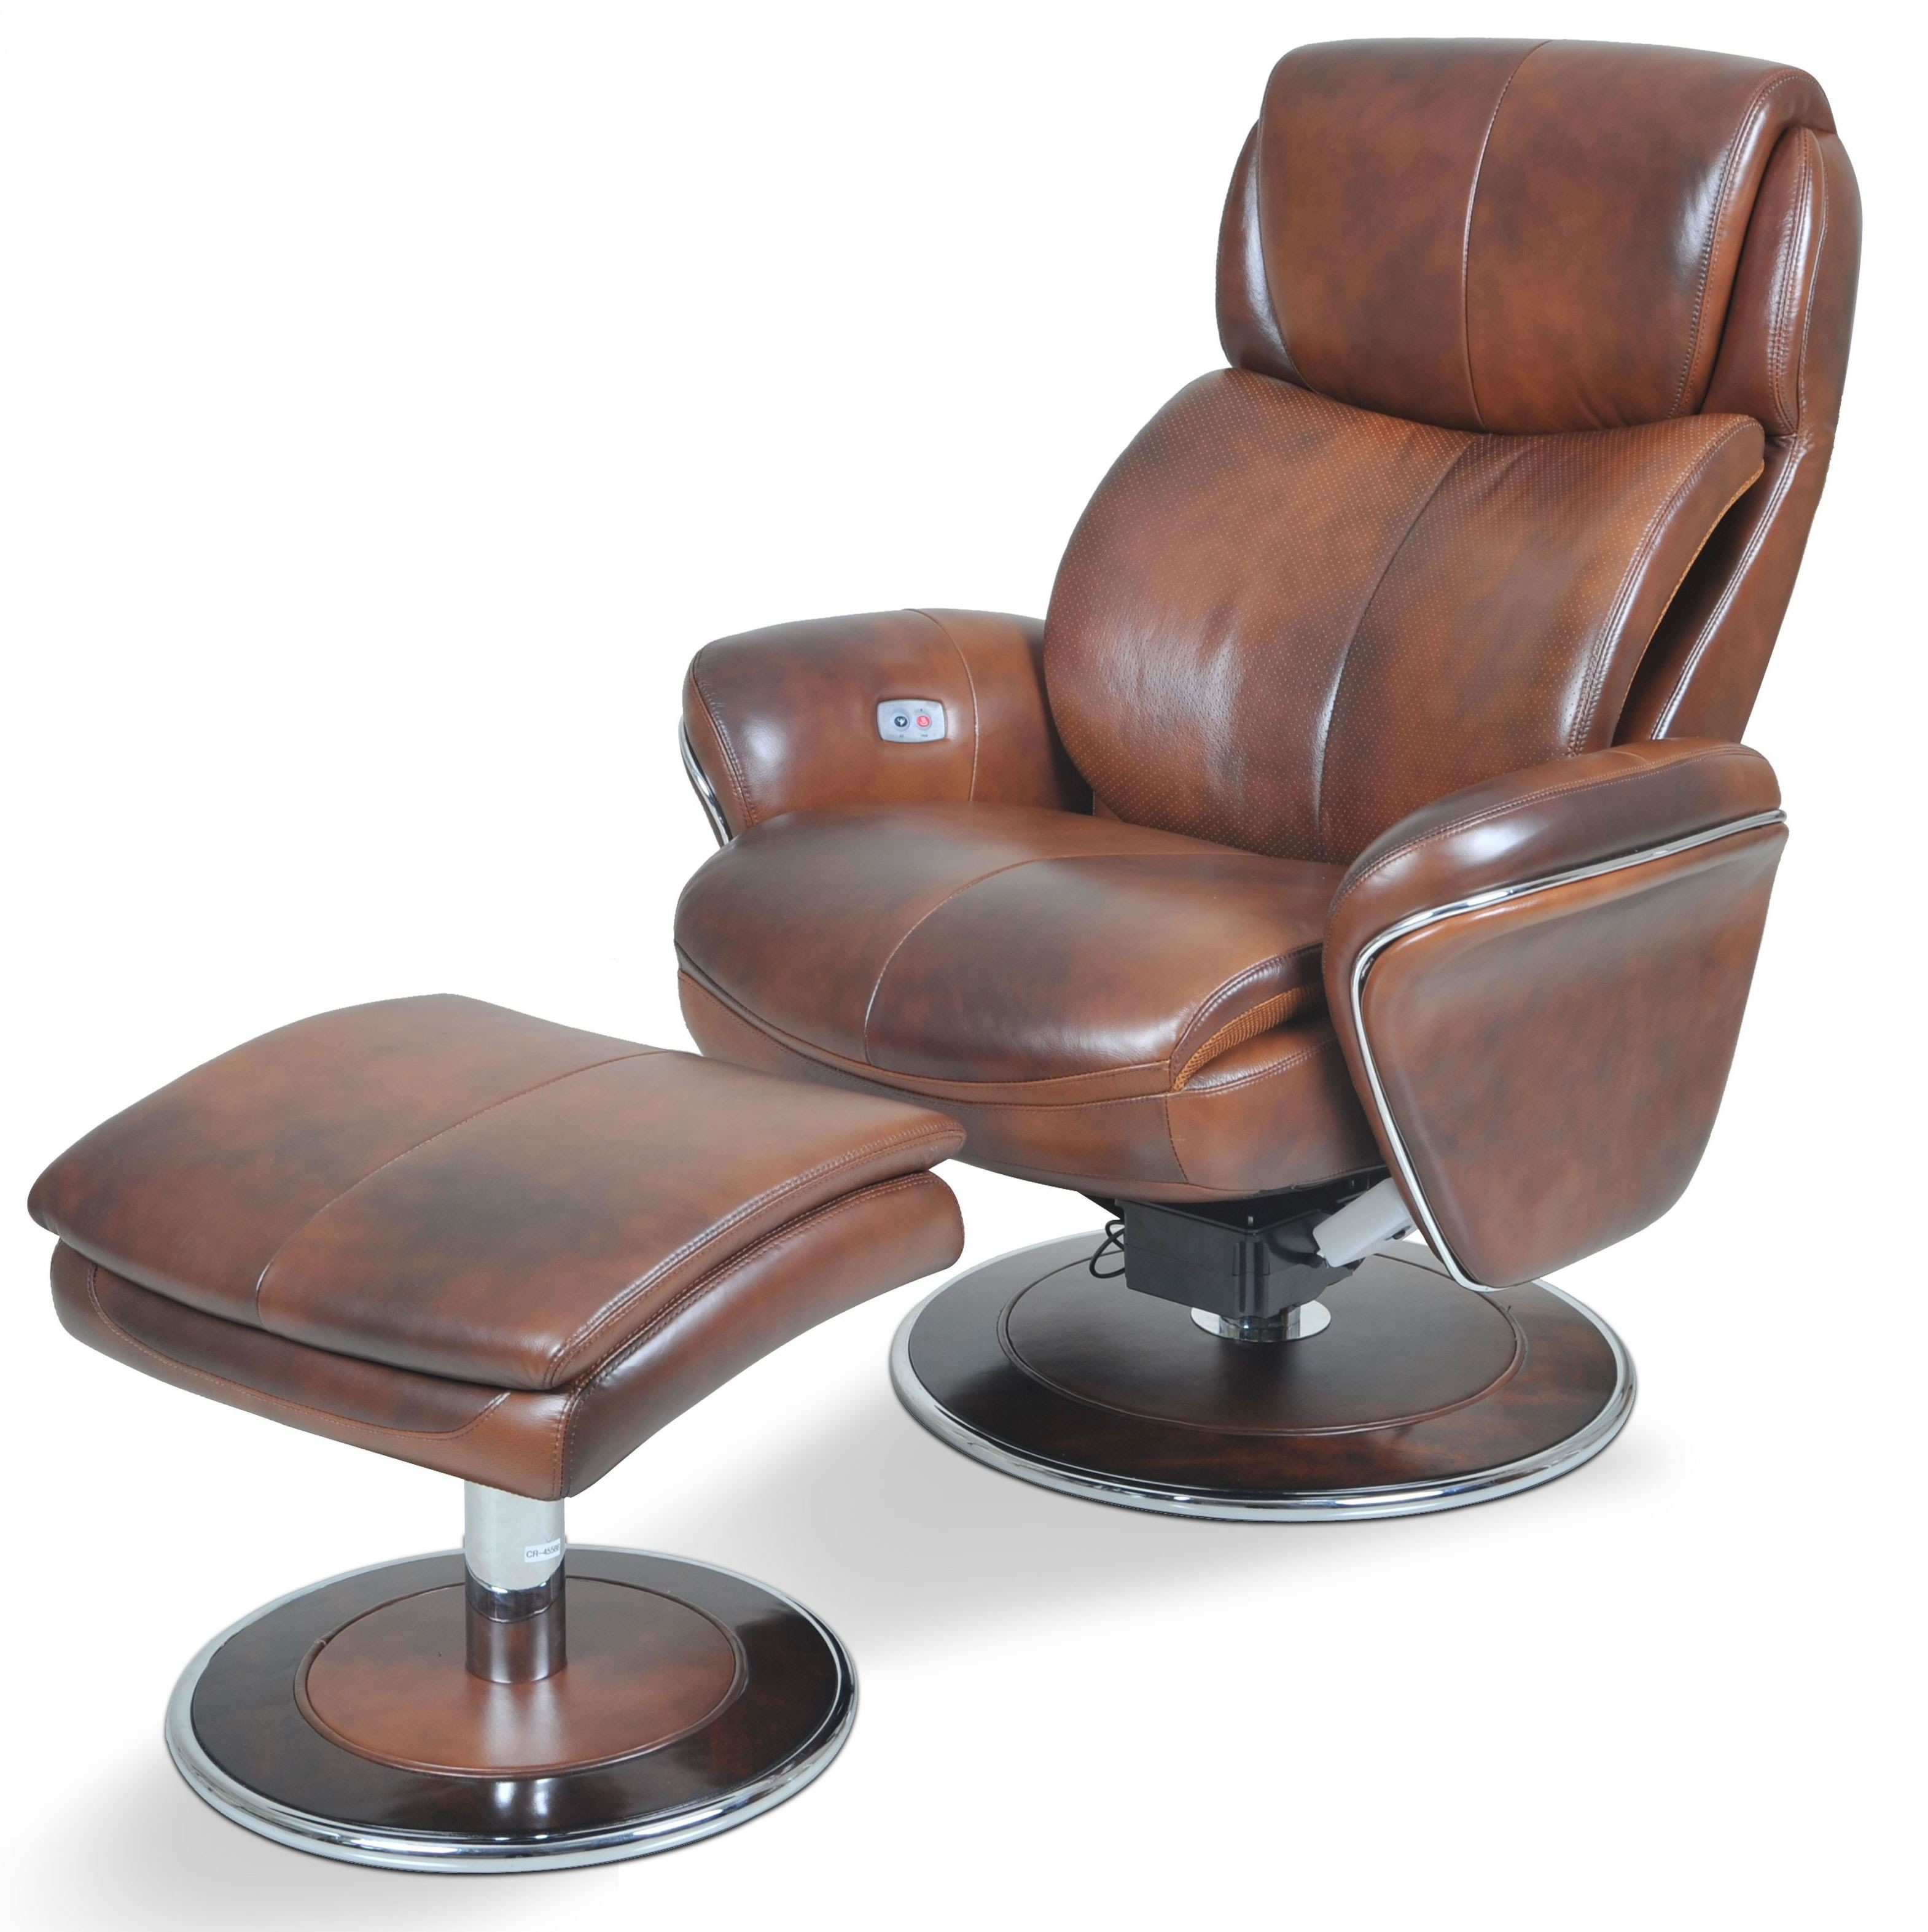 ergonomic chair and ottoman covers on folding chairs leather saddle from cozzia